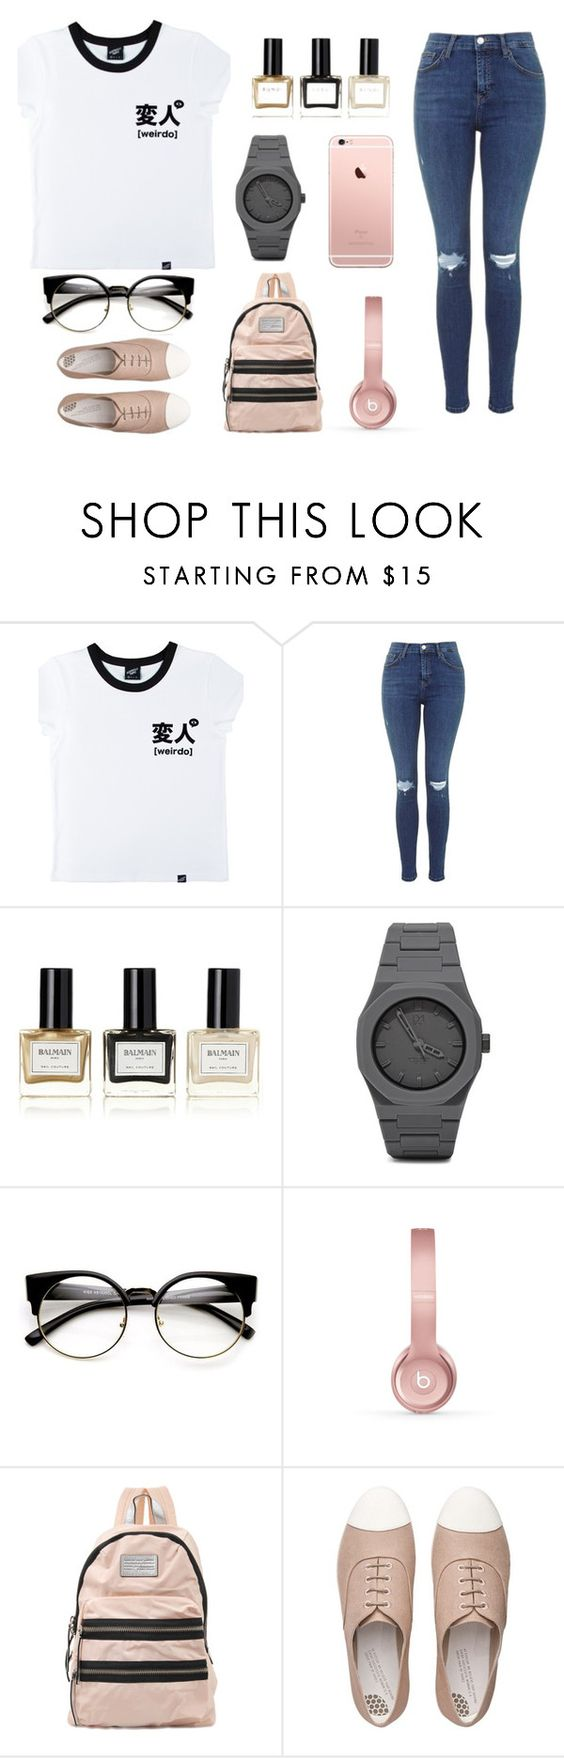 """""""weirdo"""" by megatron800 ❤ liked on Polyvore featuring Illustrated People, Balmain, CC, Beats by Dr. Dre, Marc by Marc Jacobs and FitFlop"""